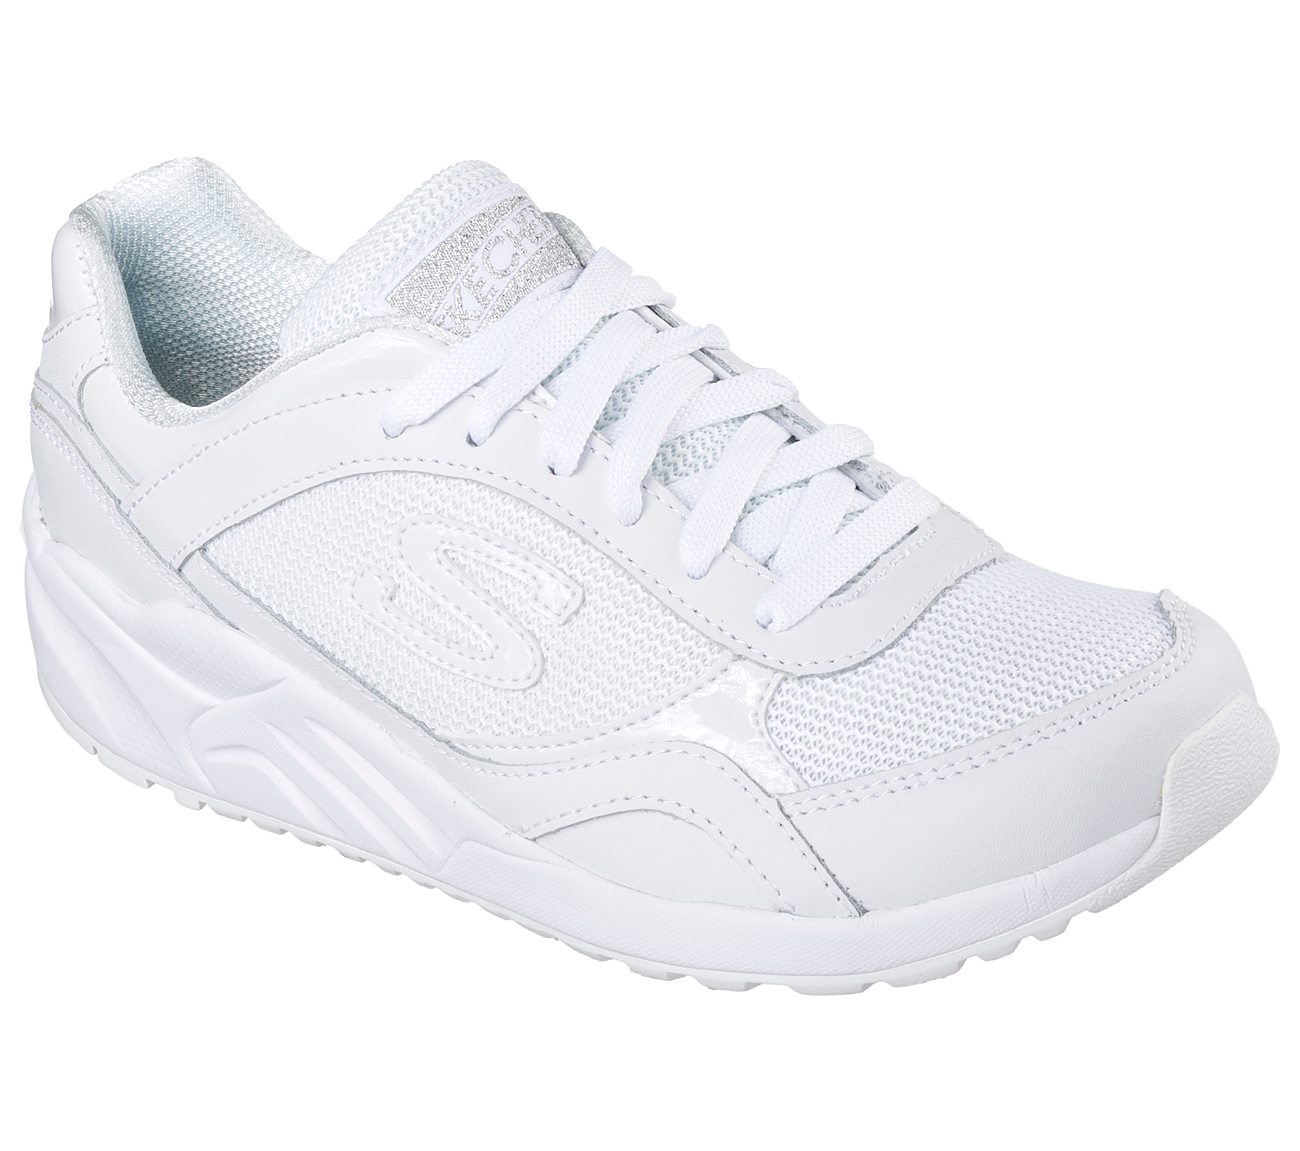 4abdfdb3c900 Buy SKECHERS OG 95 - Color Crew Originals Shoes only  65.00